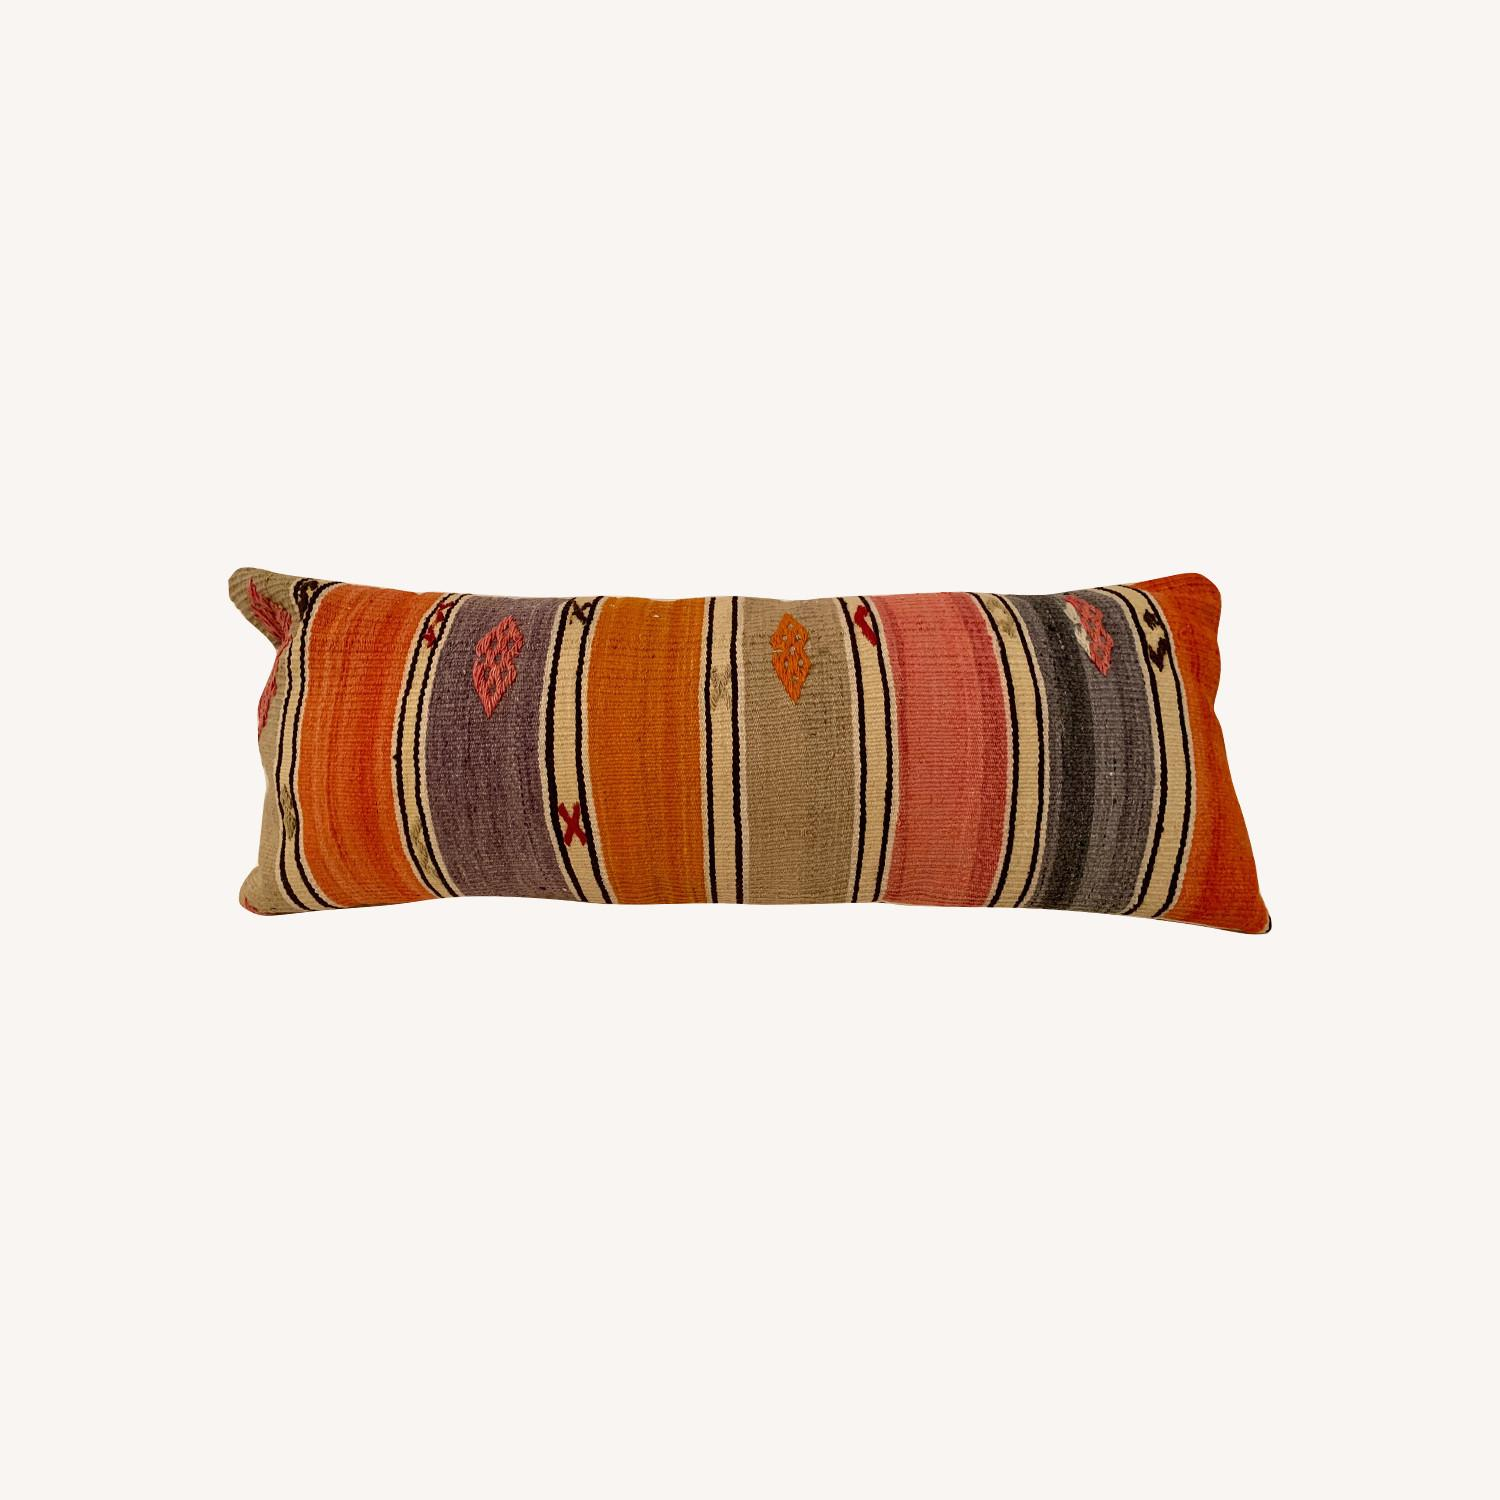 Striped Bed/Lumbar Pillow